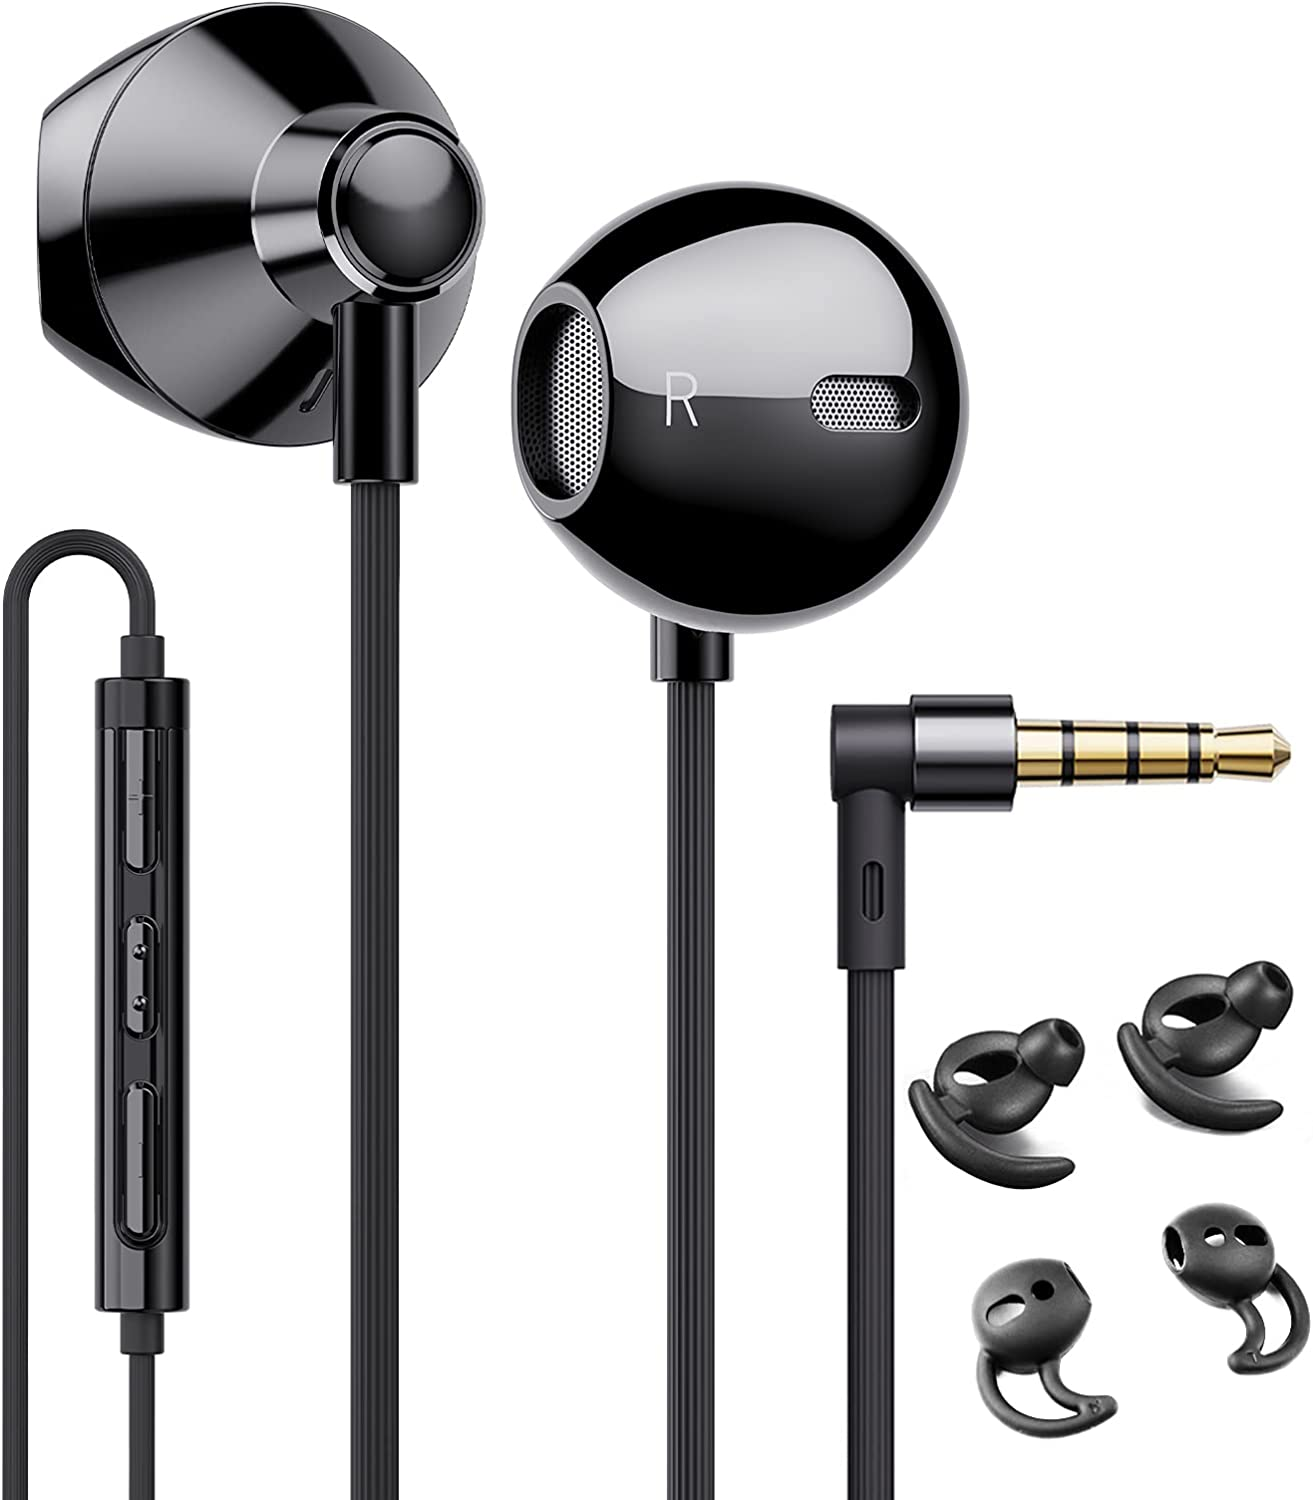 Linklike Wired Earbuds with Latest sale item Microphone Audio D Hi-Res Earphones